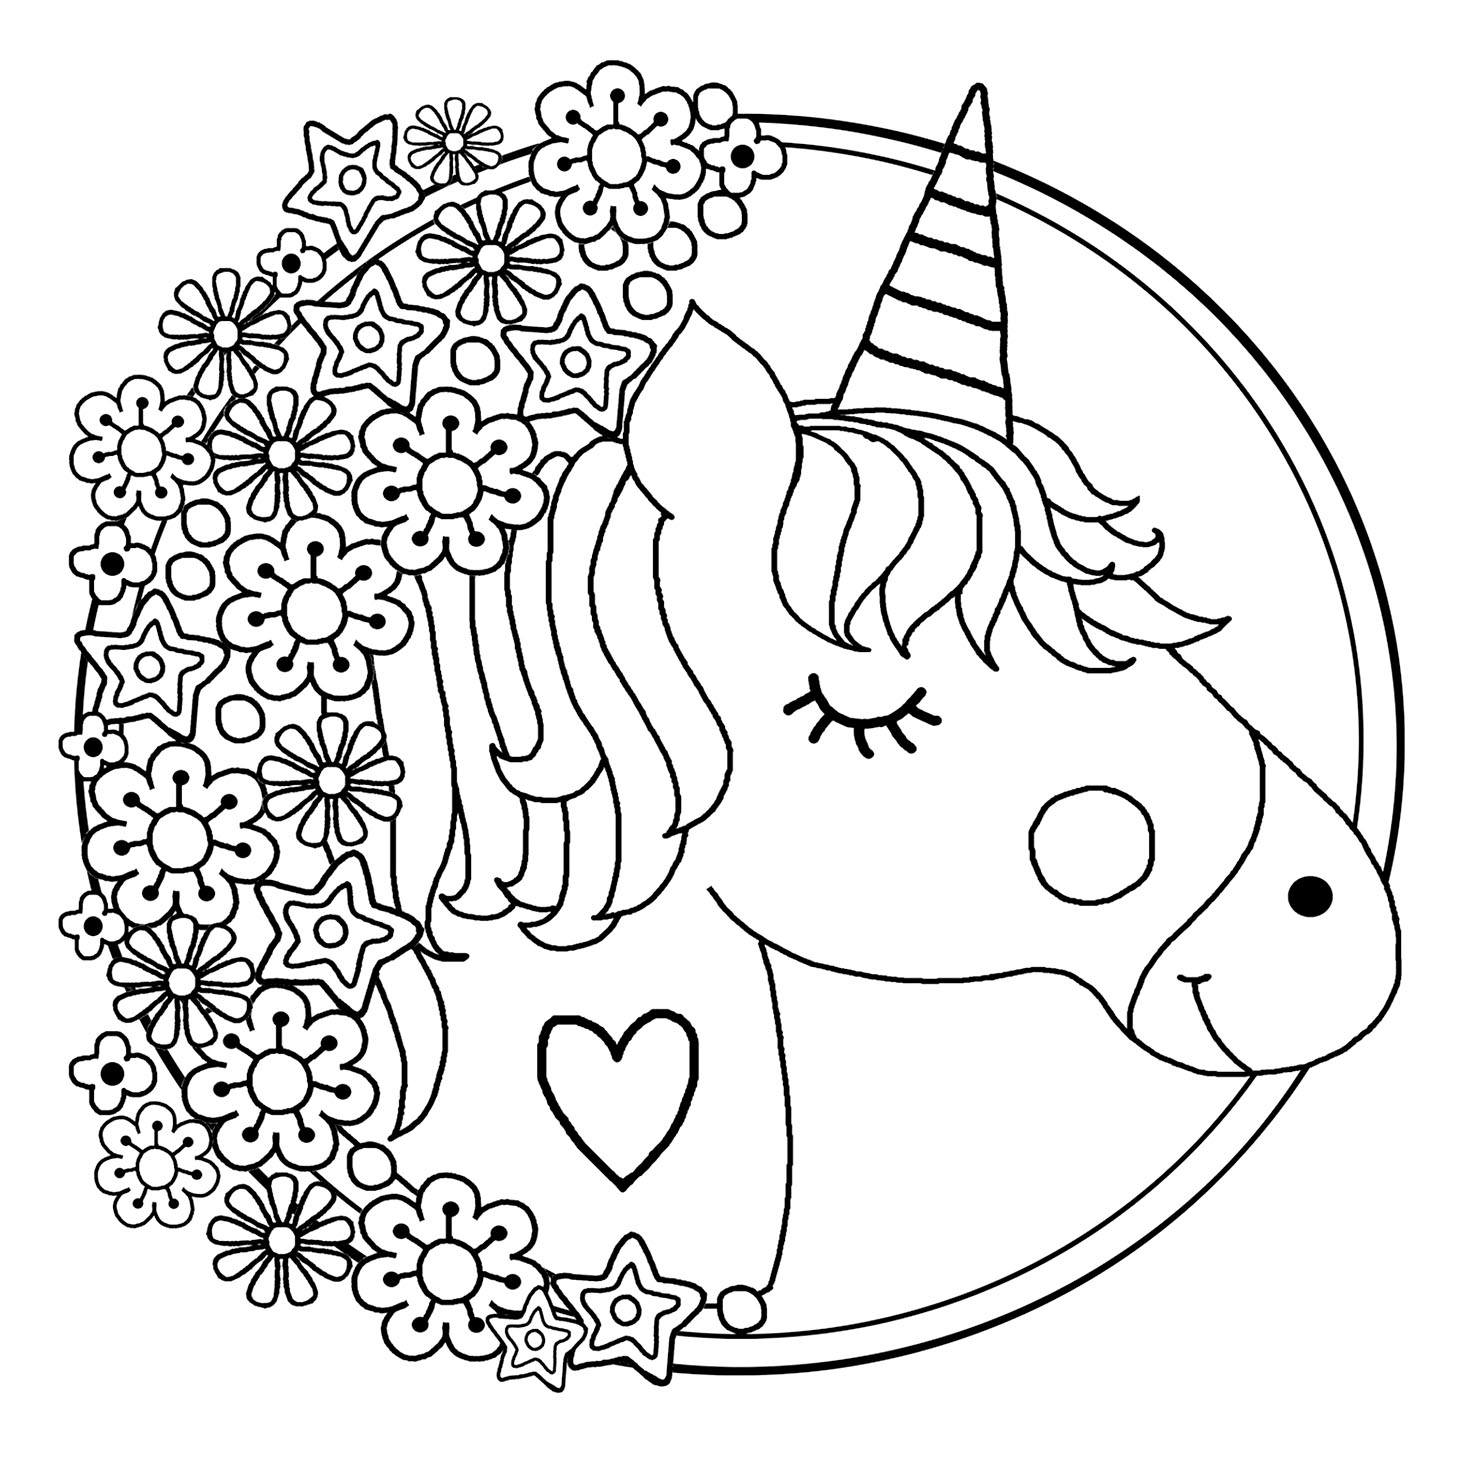 unicorn coloring worksheets unicorn coloring pages free learning printable coloring worksheets unicorn